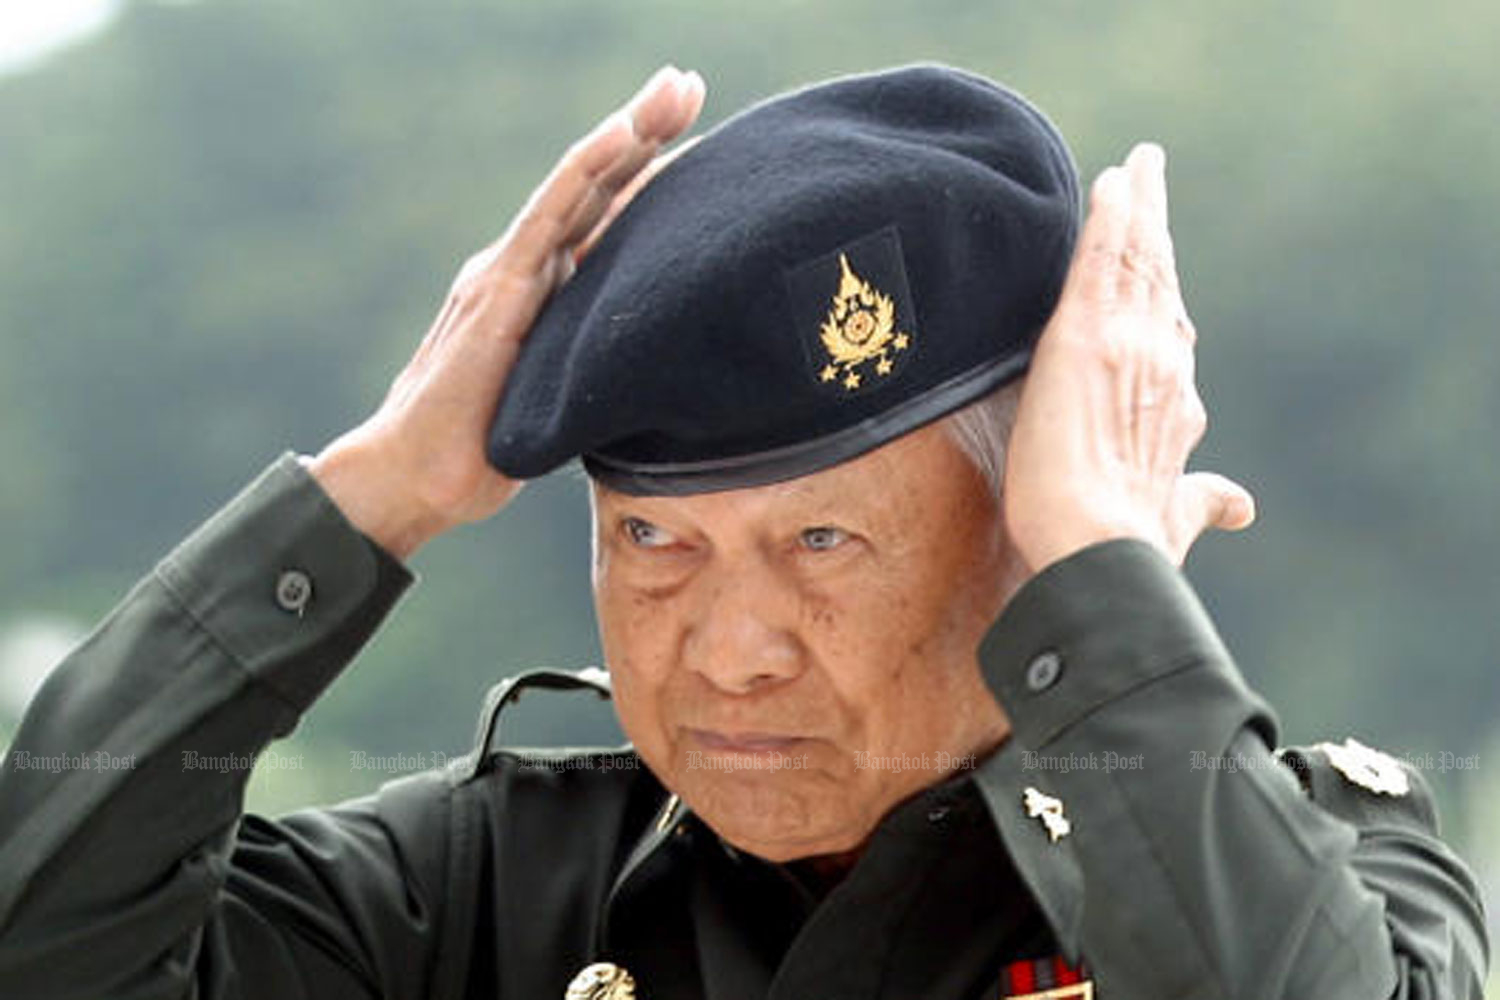 Privy Council chairman Gen Prem Tinsulanonda puts on a beret before addressing cadets at the Chulachomklao Royal Military Academy at Khao Cha-ngoke, Nakhon Nayok province, in 2006. (Photo by Surapol Promsaka na Sakolnakorn)